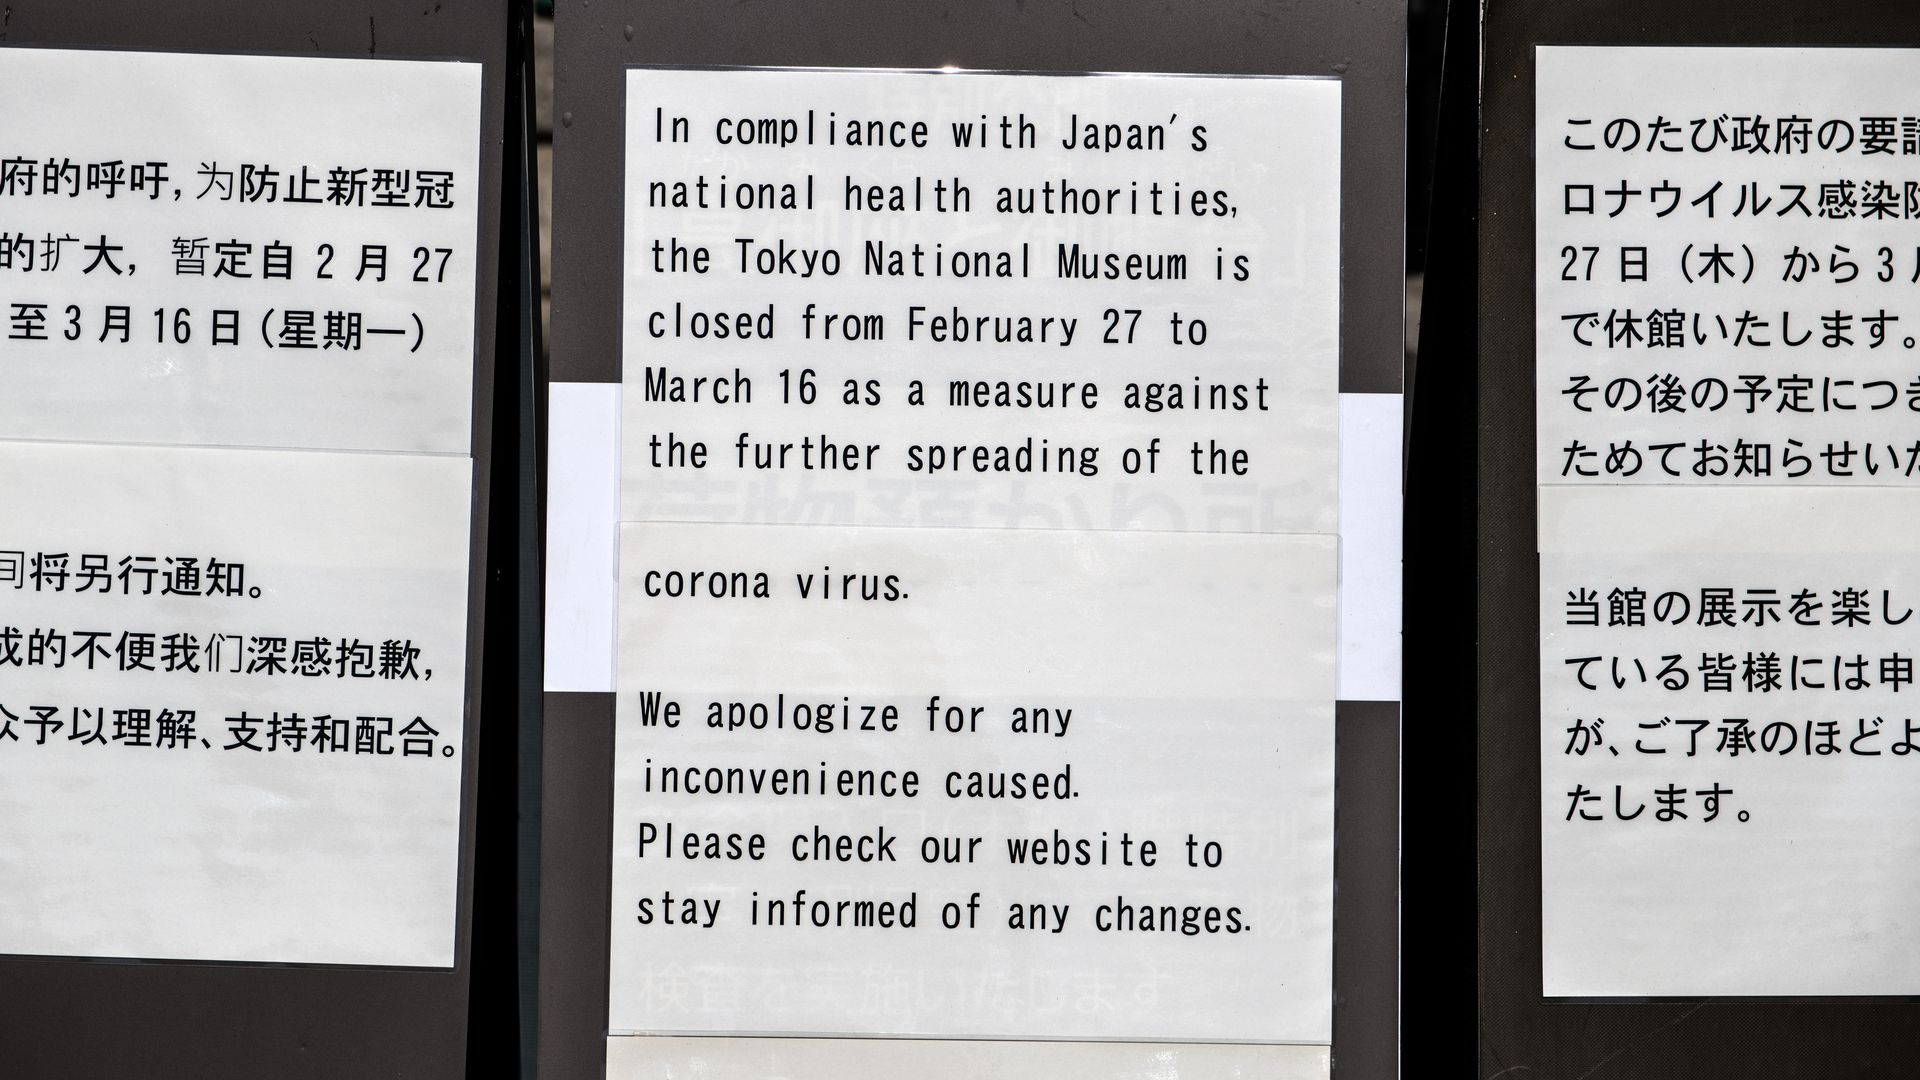 A sign in front of the Tokyo National Museum says it's closed because of the coronavirus